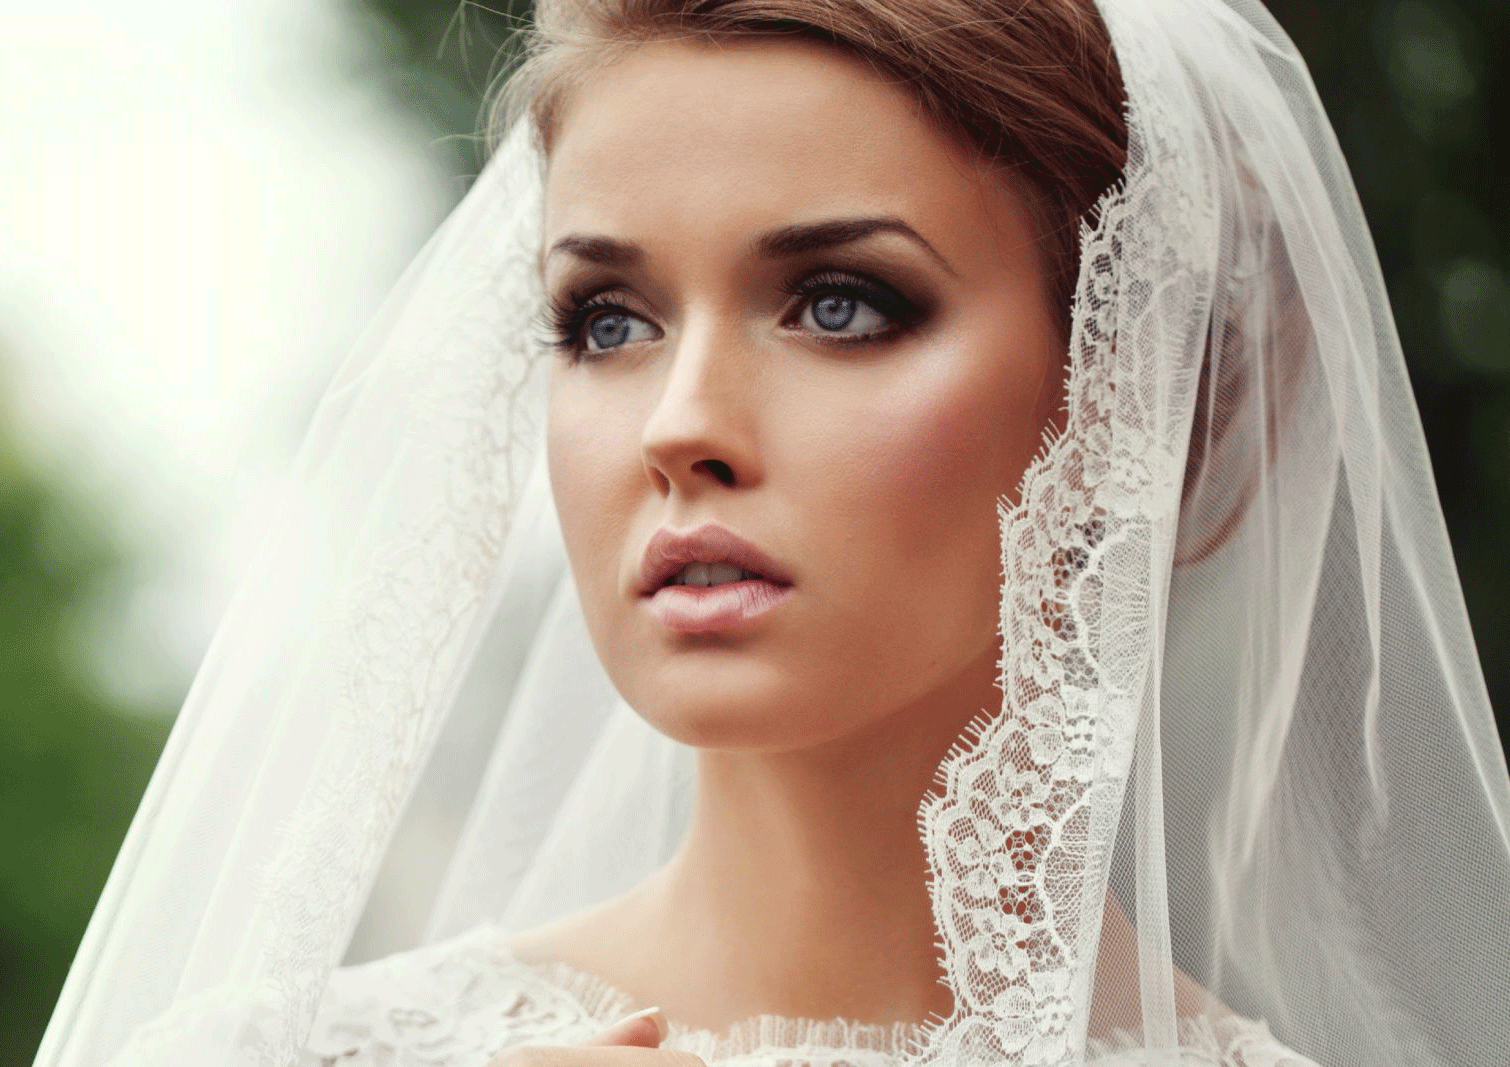 Perfect Bridal - Achieve a flawless, more perfect version of yourself. This lesson involves exploring bridal make-up & hair design. I will help you realise your vision and provide expert guidance on how to showcase a bride's personality. Let me share with you behind the scenes secrets to ensure you are the leading lady on your big day. We will explore both bridal hair and make-up and I will help you design your perfect wedding day look.Course Details-Tailor made to your individual skill level and requirements- 4.5 hr lesson- In a location of your choice or at my address in North london- 1 to 1 course